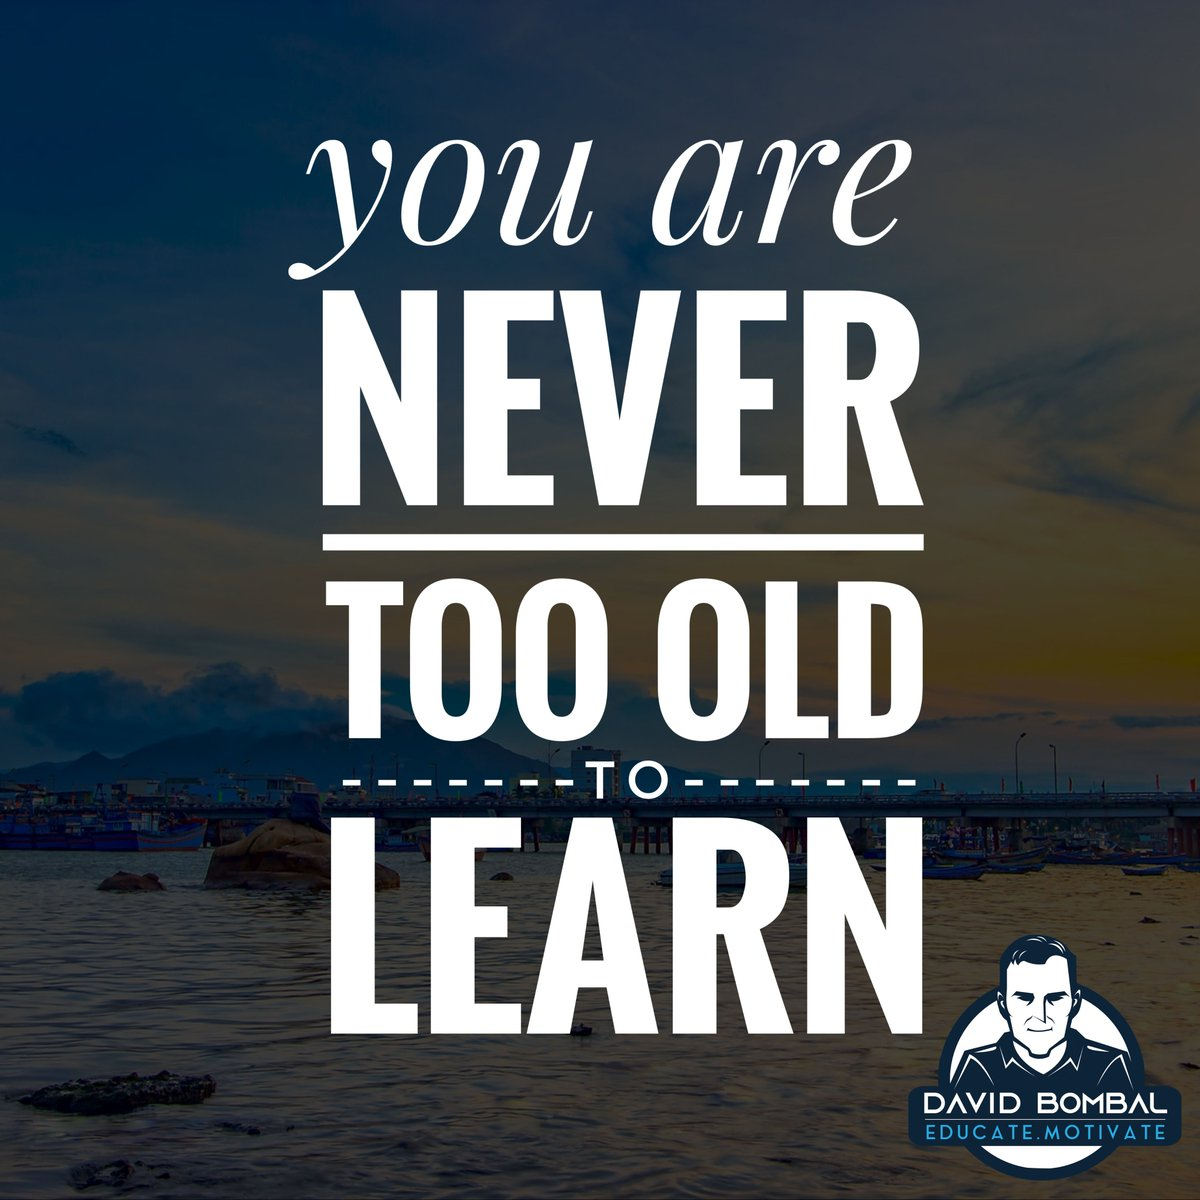 You are never too old to learn.  #motivationquotes #dailymotivation #ccna #inspirationalquote #cisco pic.twitter.com/R9vyuAAQom